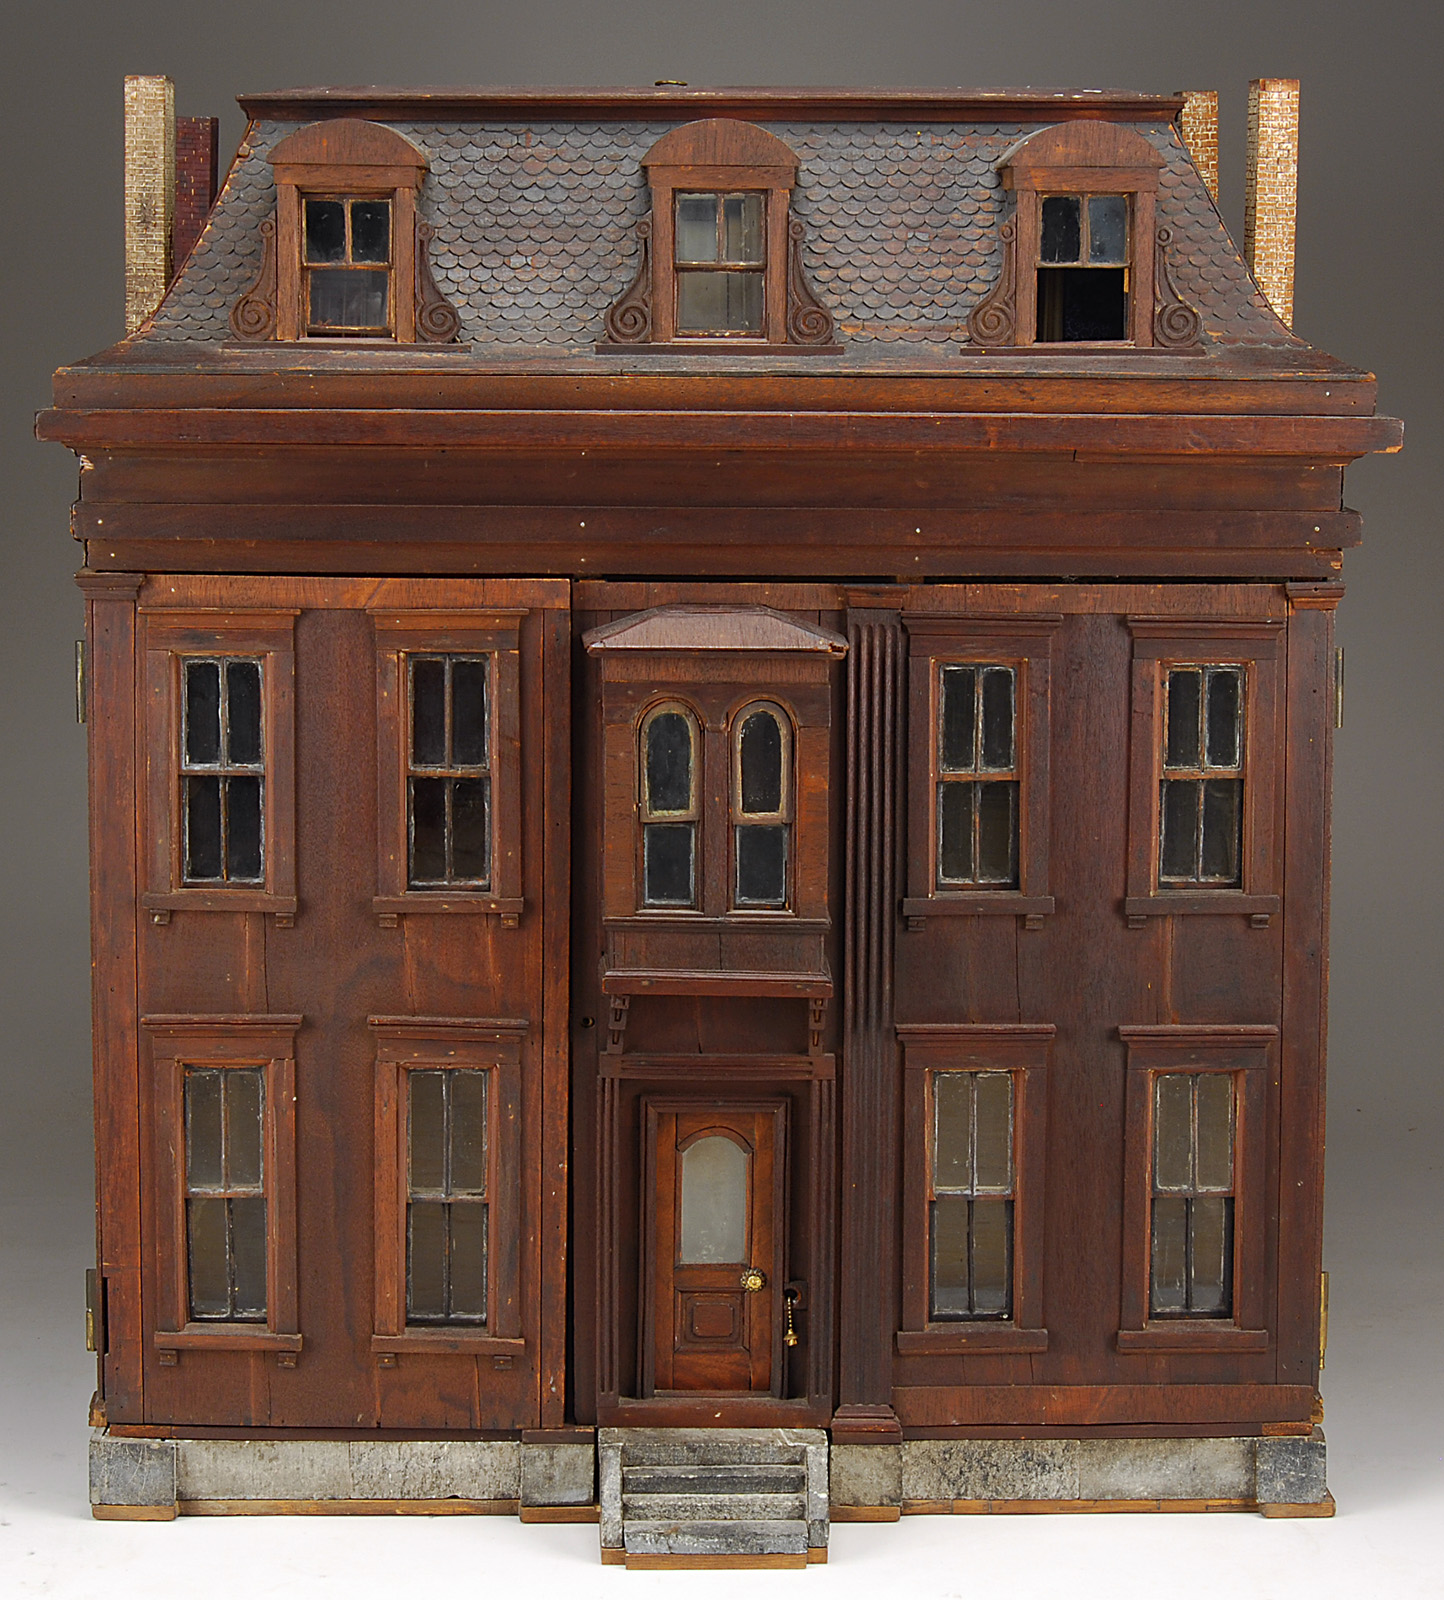 Vintage Wooden Dollhouse 15